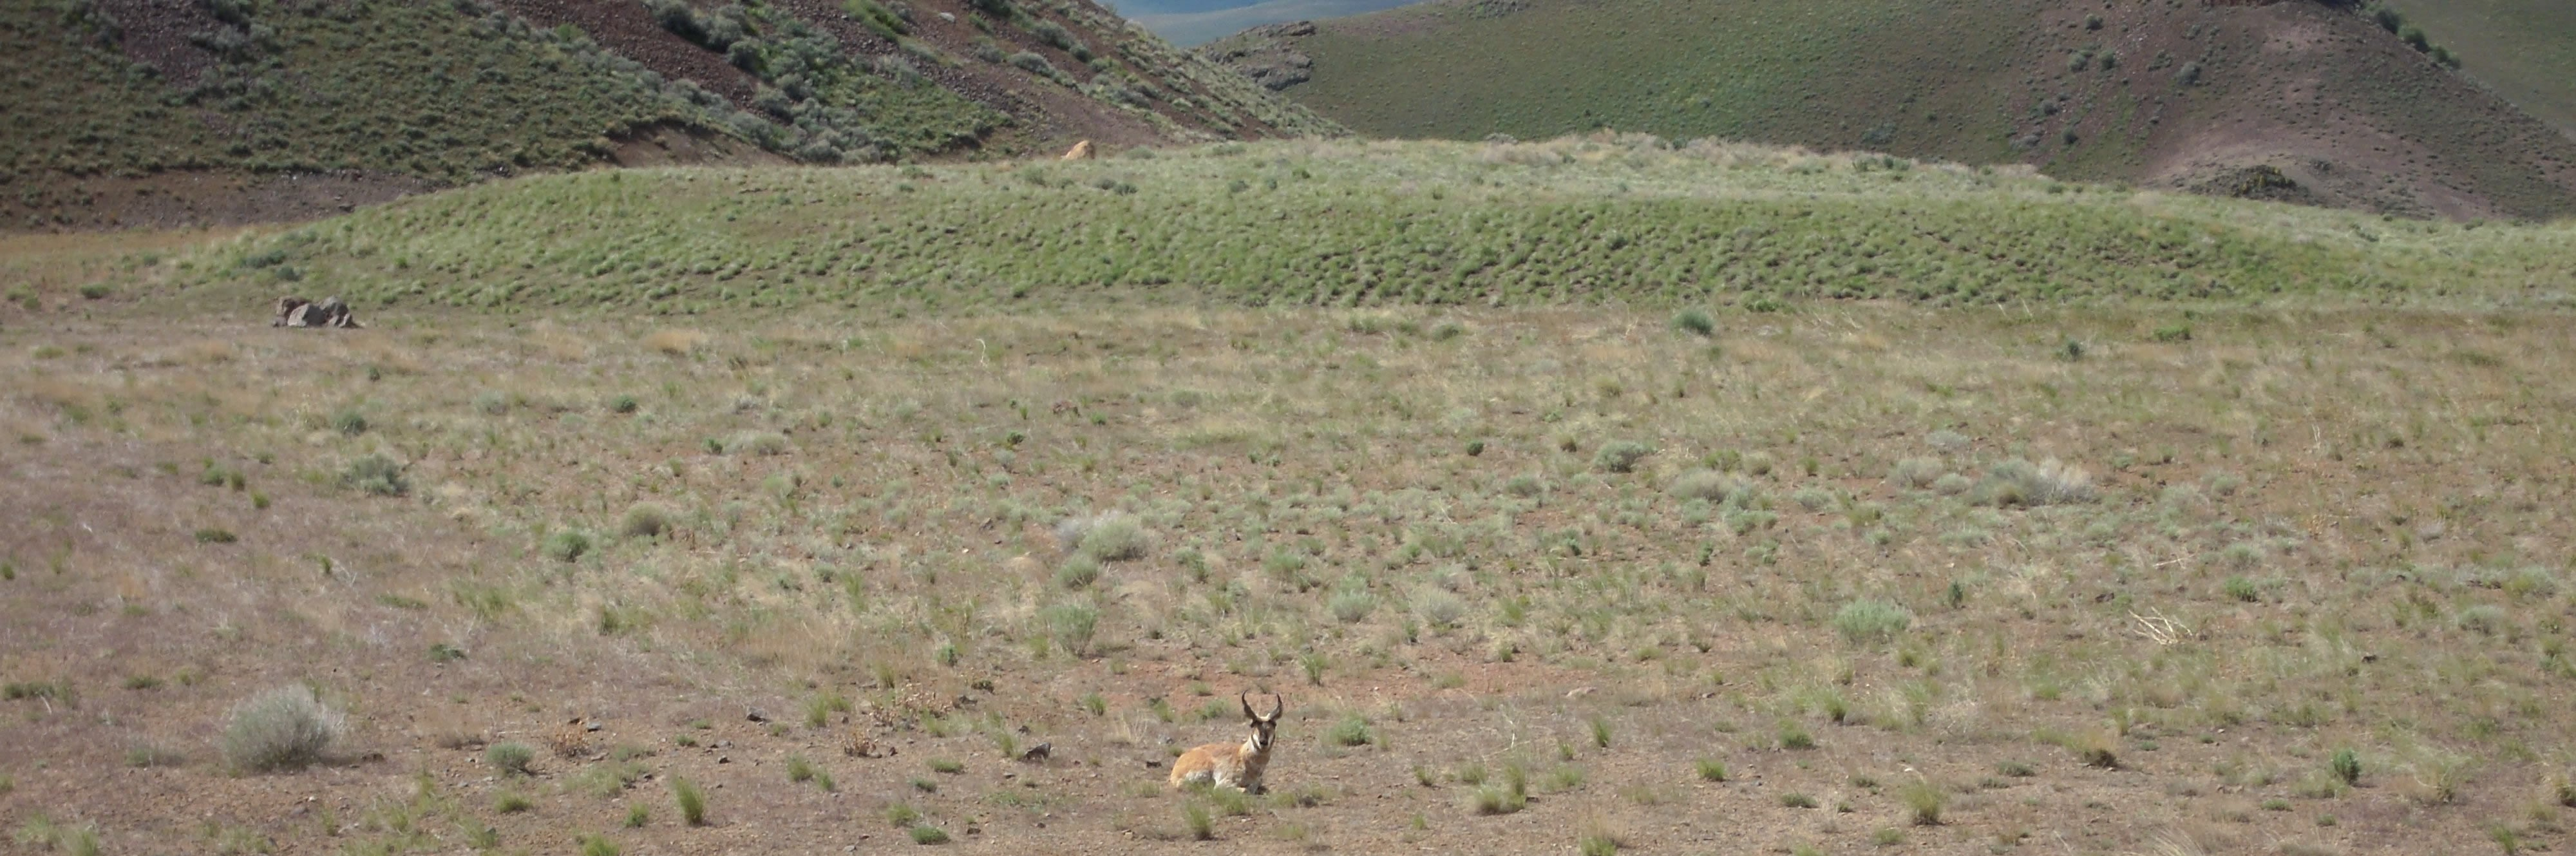 Reclaimed and well-vegetated head leach pad with a pronghorn laying down in the foreground.